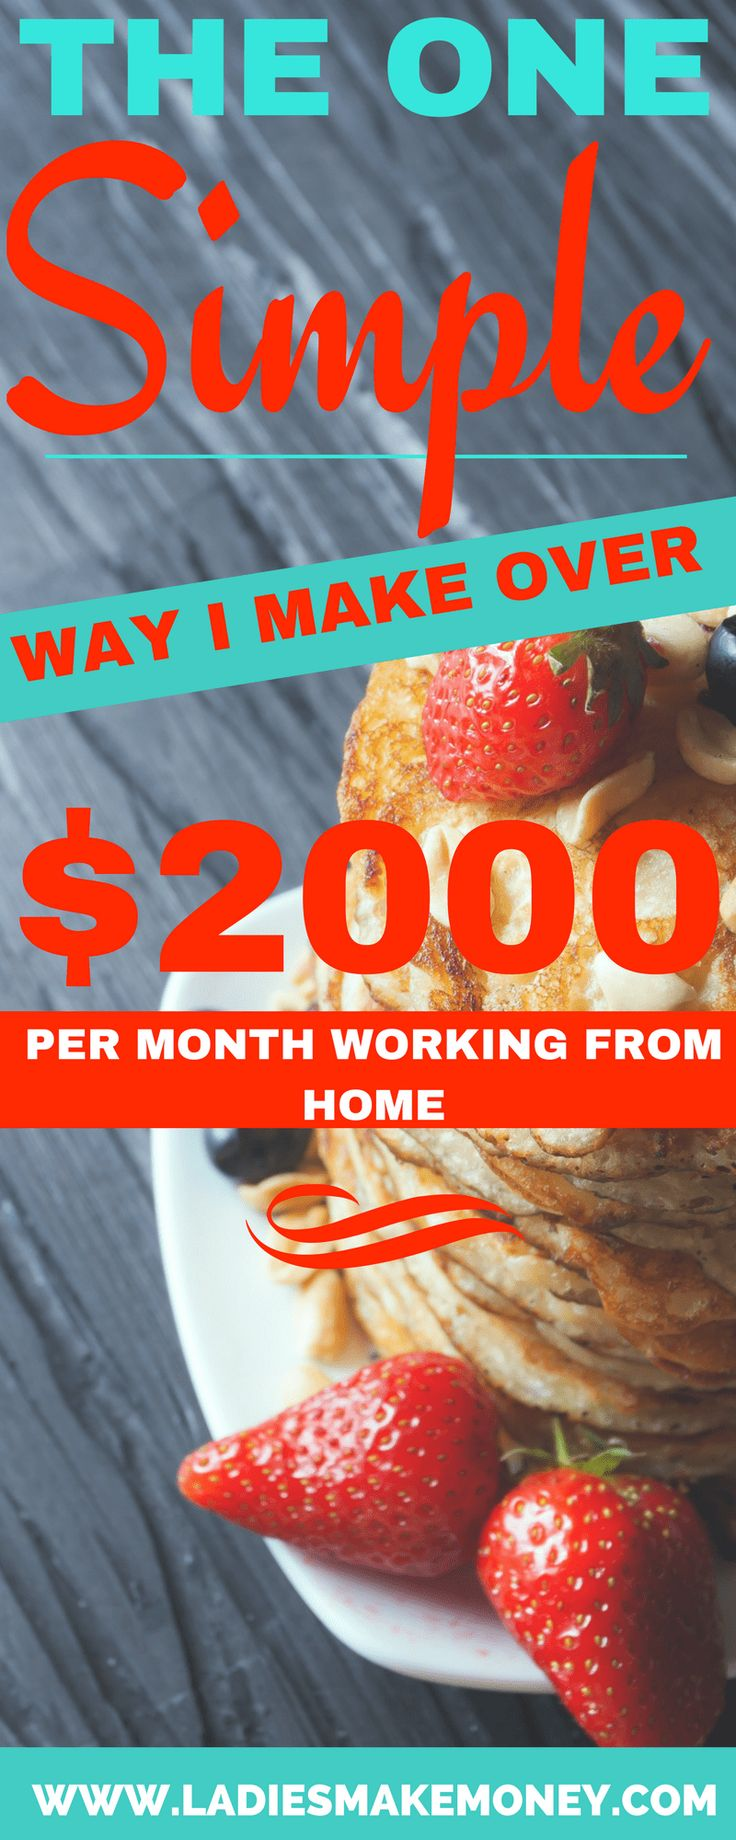 Teach English online and make extra money. How to make extra money teaching English online. Make extra money today working from home. How I make extra money working from home as stay at home mom. blogging tips | income report | traffic report | make money from blogging| make extra money| side hustles | ways to make| How to make money blogging | Ways to make extra money online| Ways to make money| Ways to make extra money| Work from home jobs | Make money fast | Side hustles| work from home…